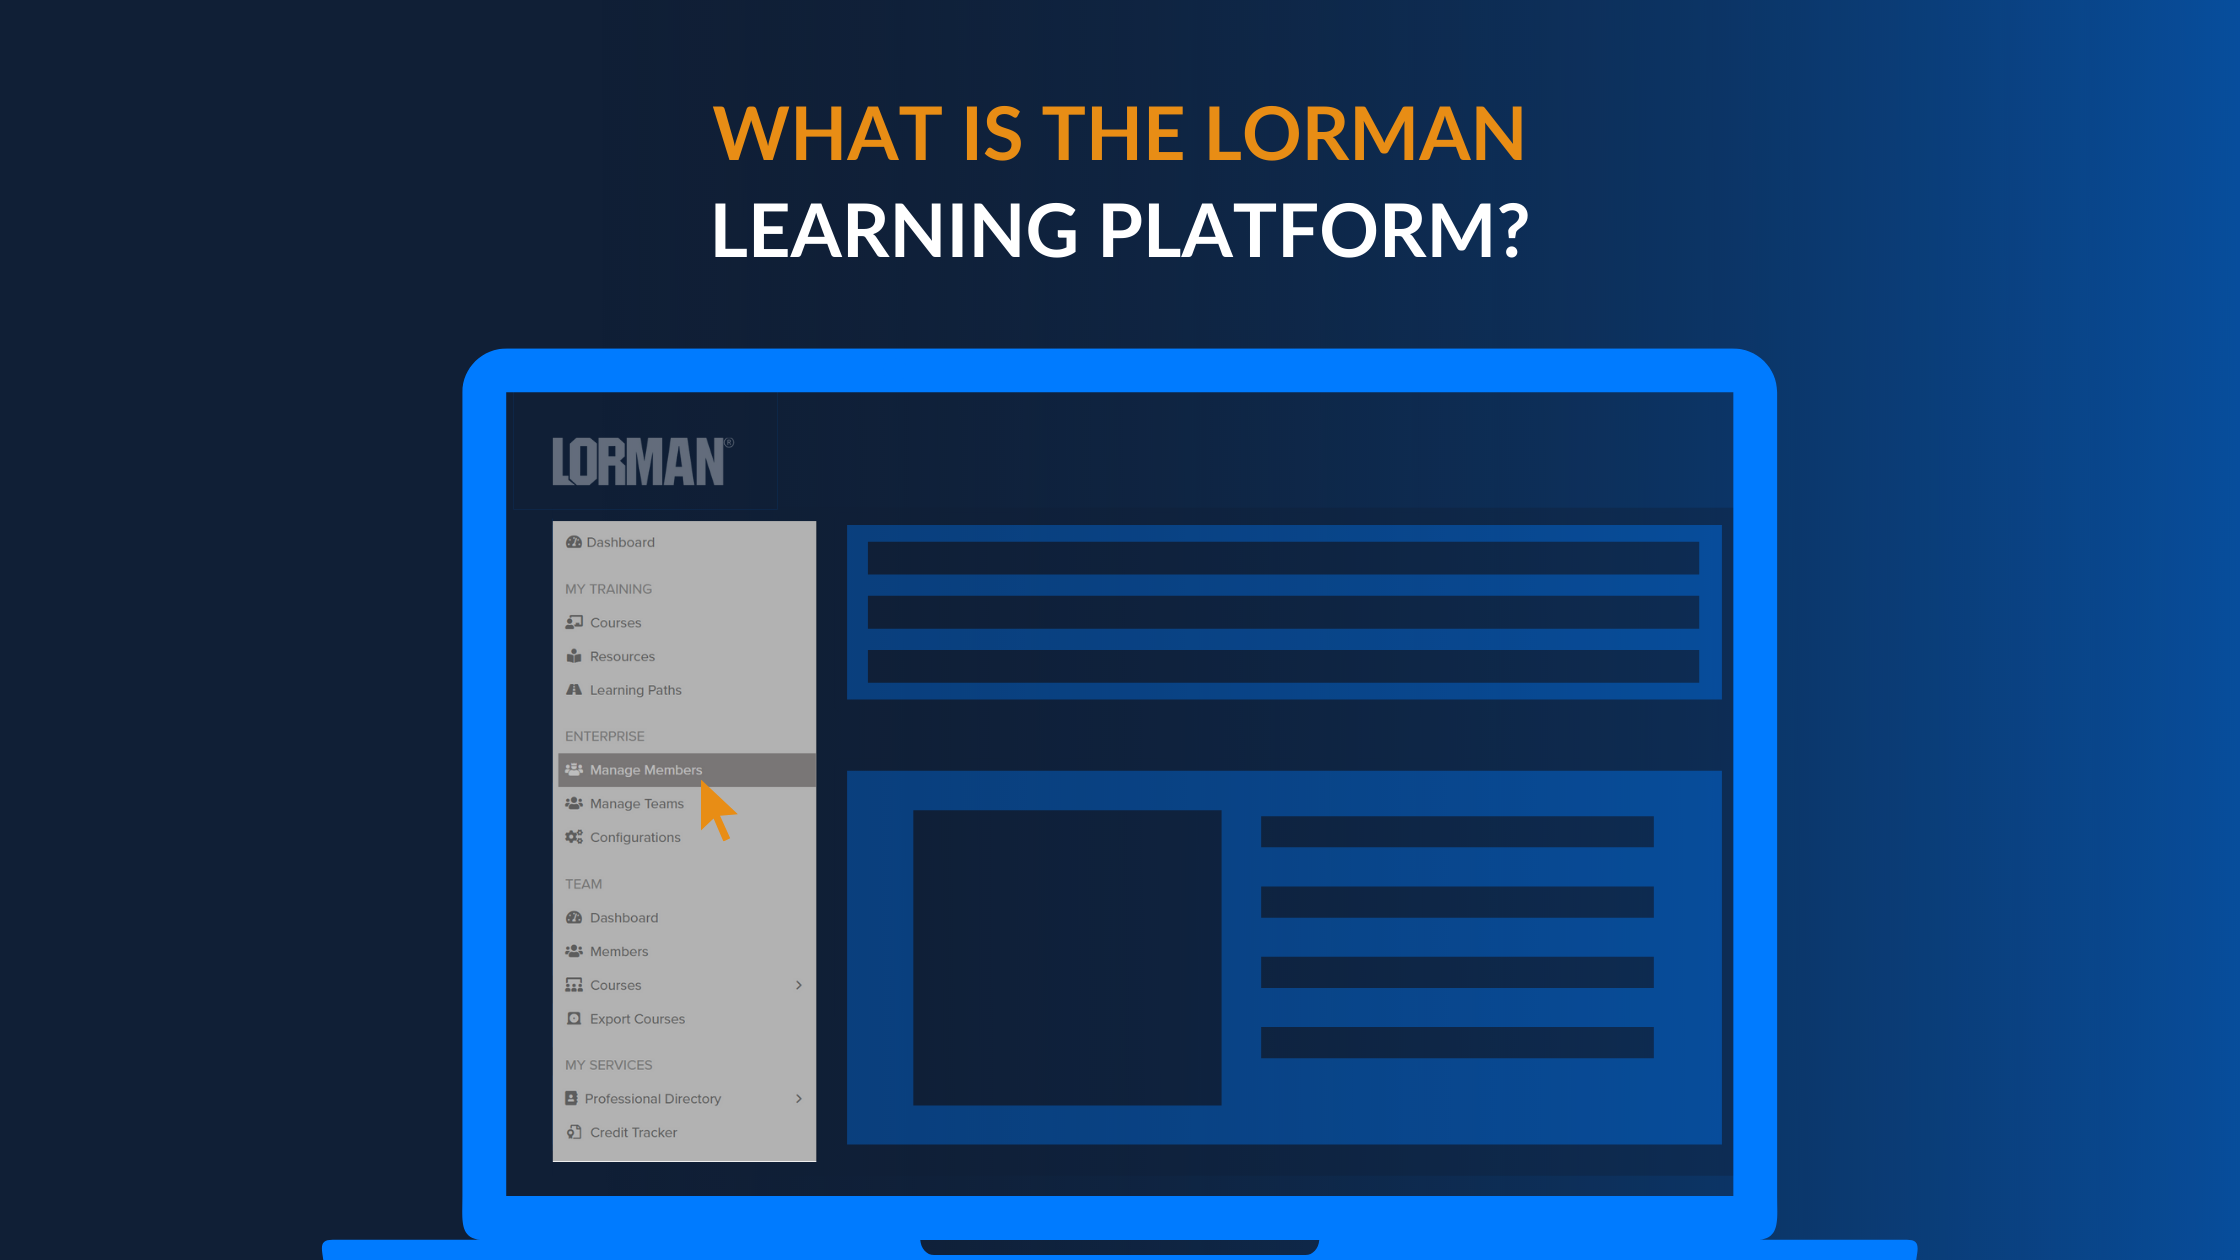 What is the Lorman Learning Platform?